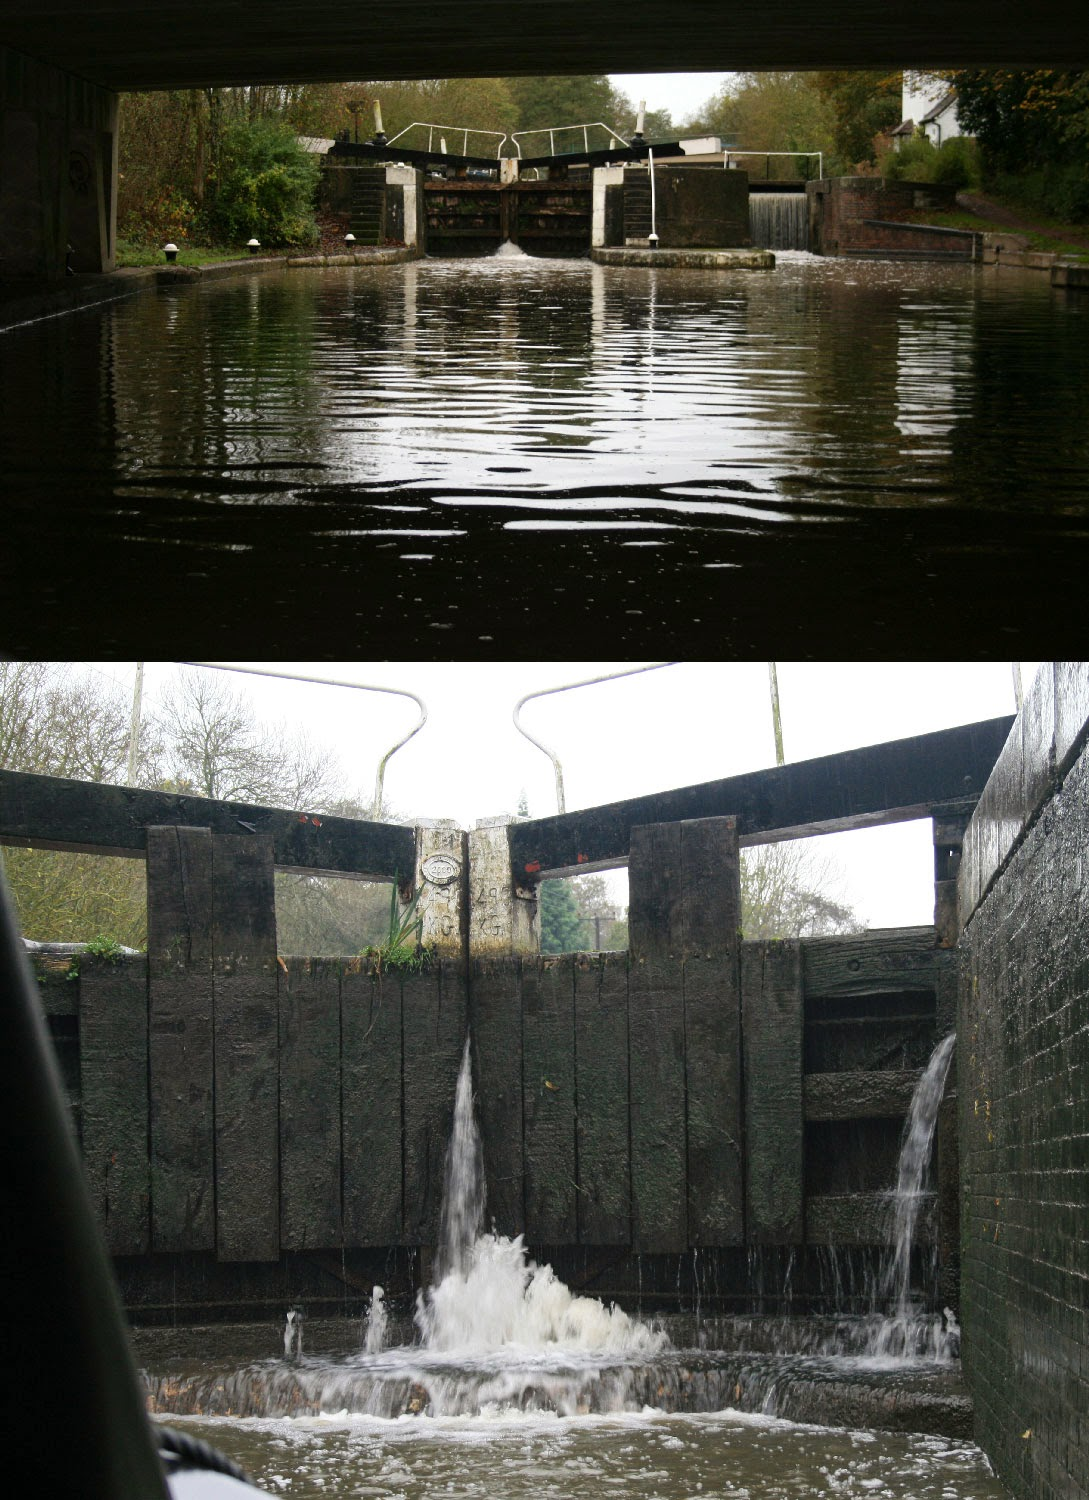 The first lock, and while we were in it